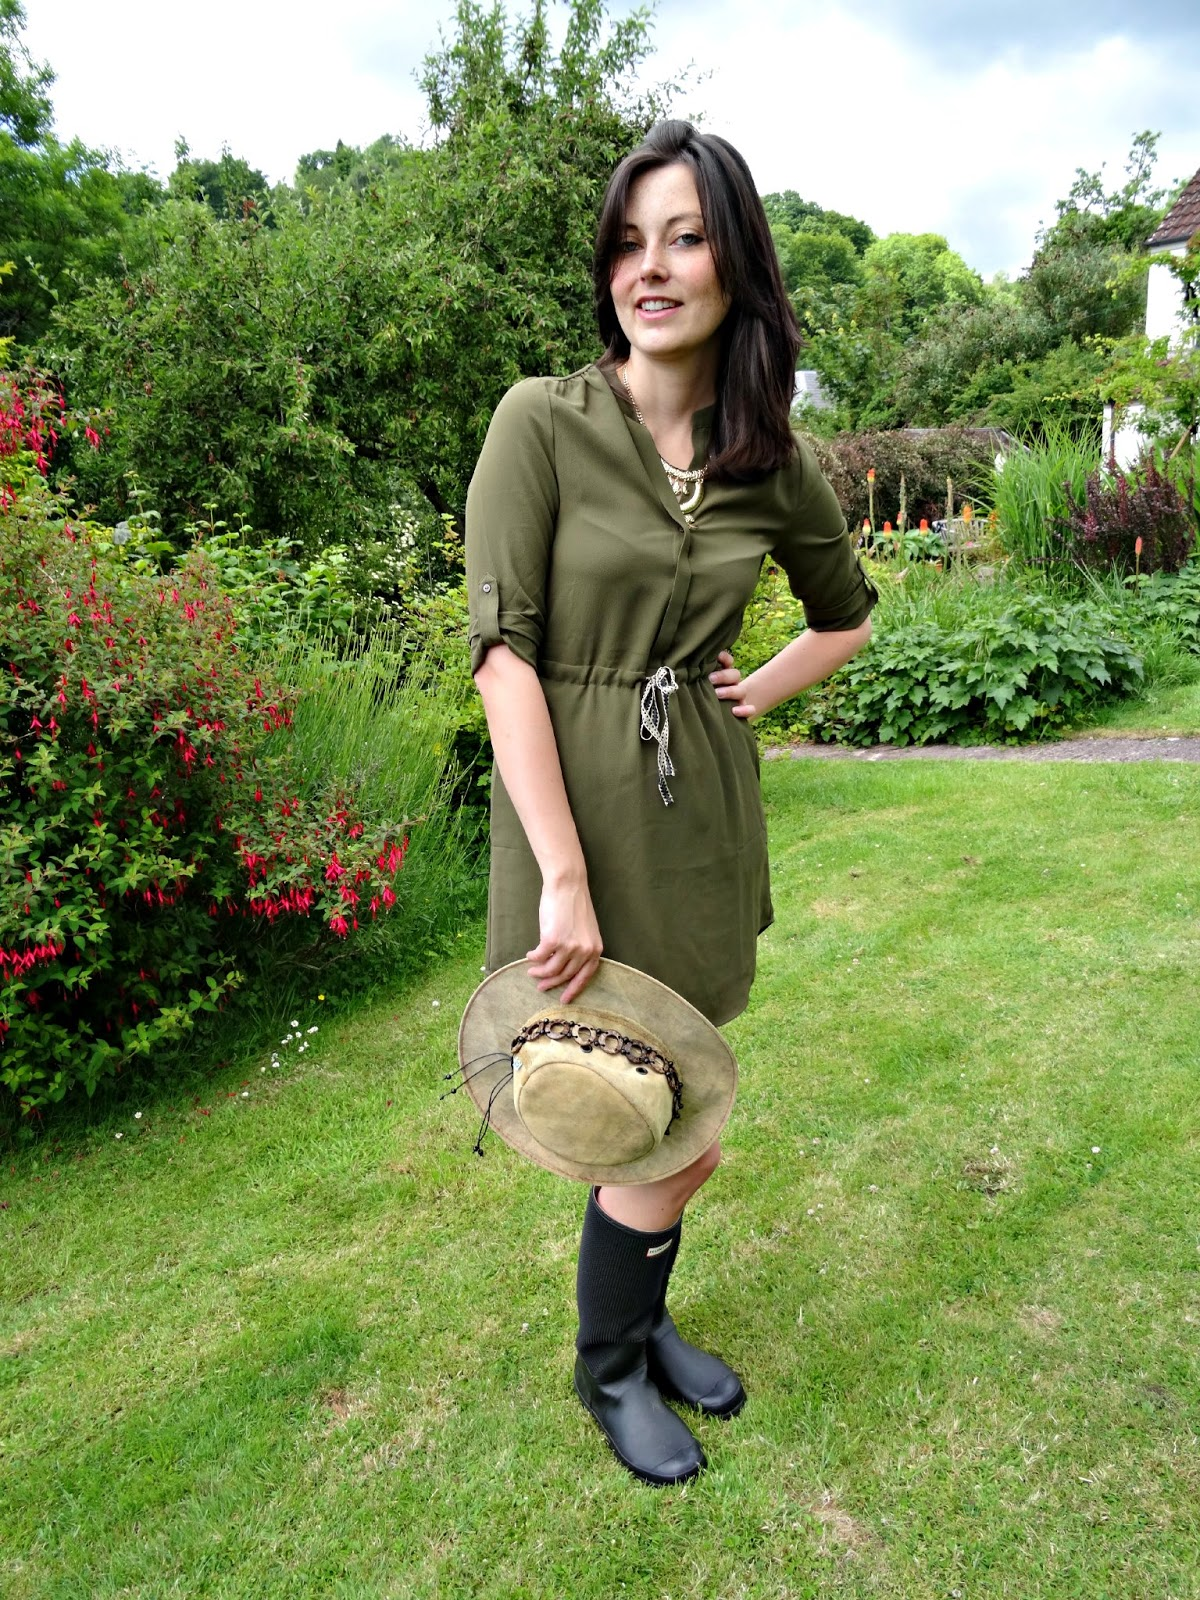 Glastonbury festival wear green coloured shirt dress